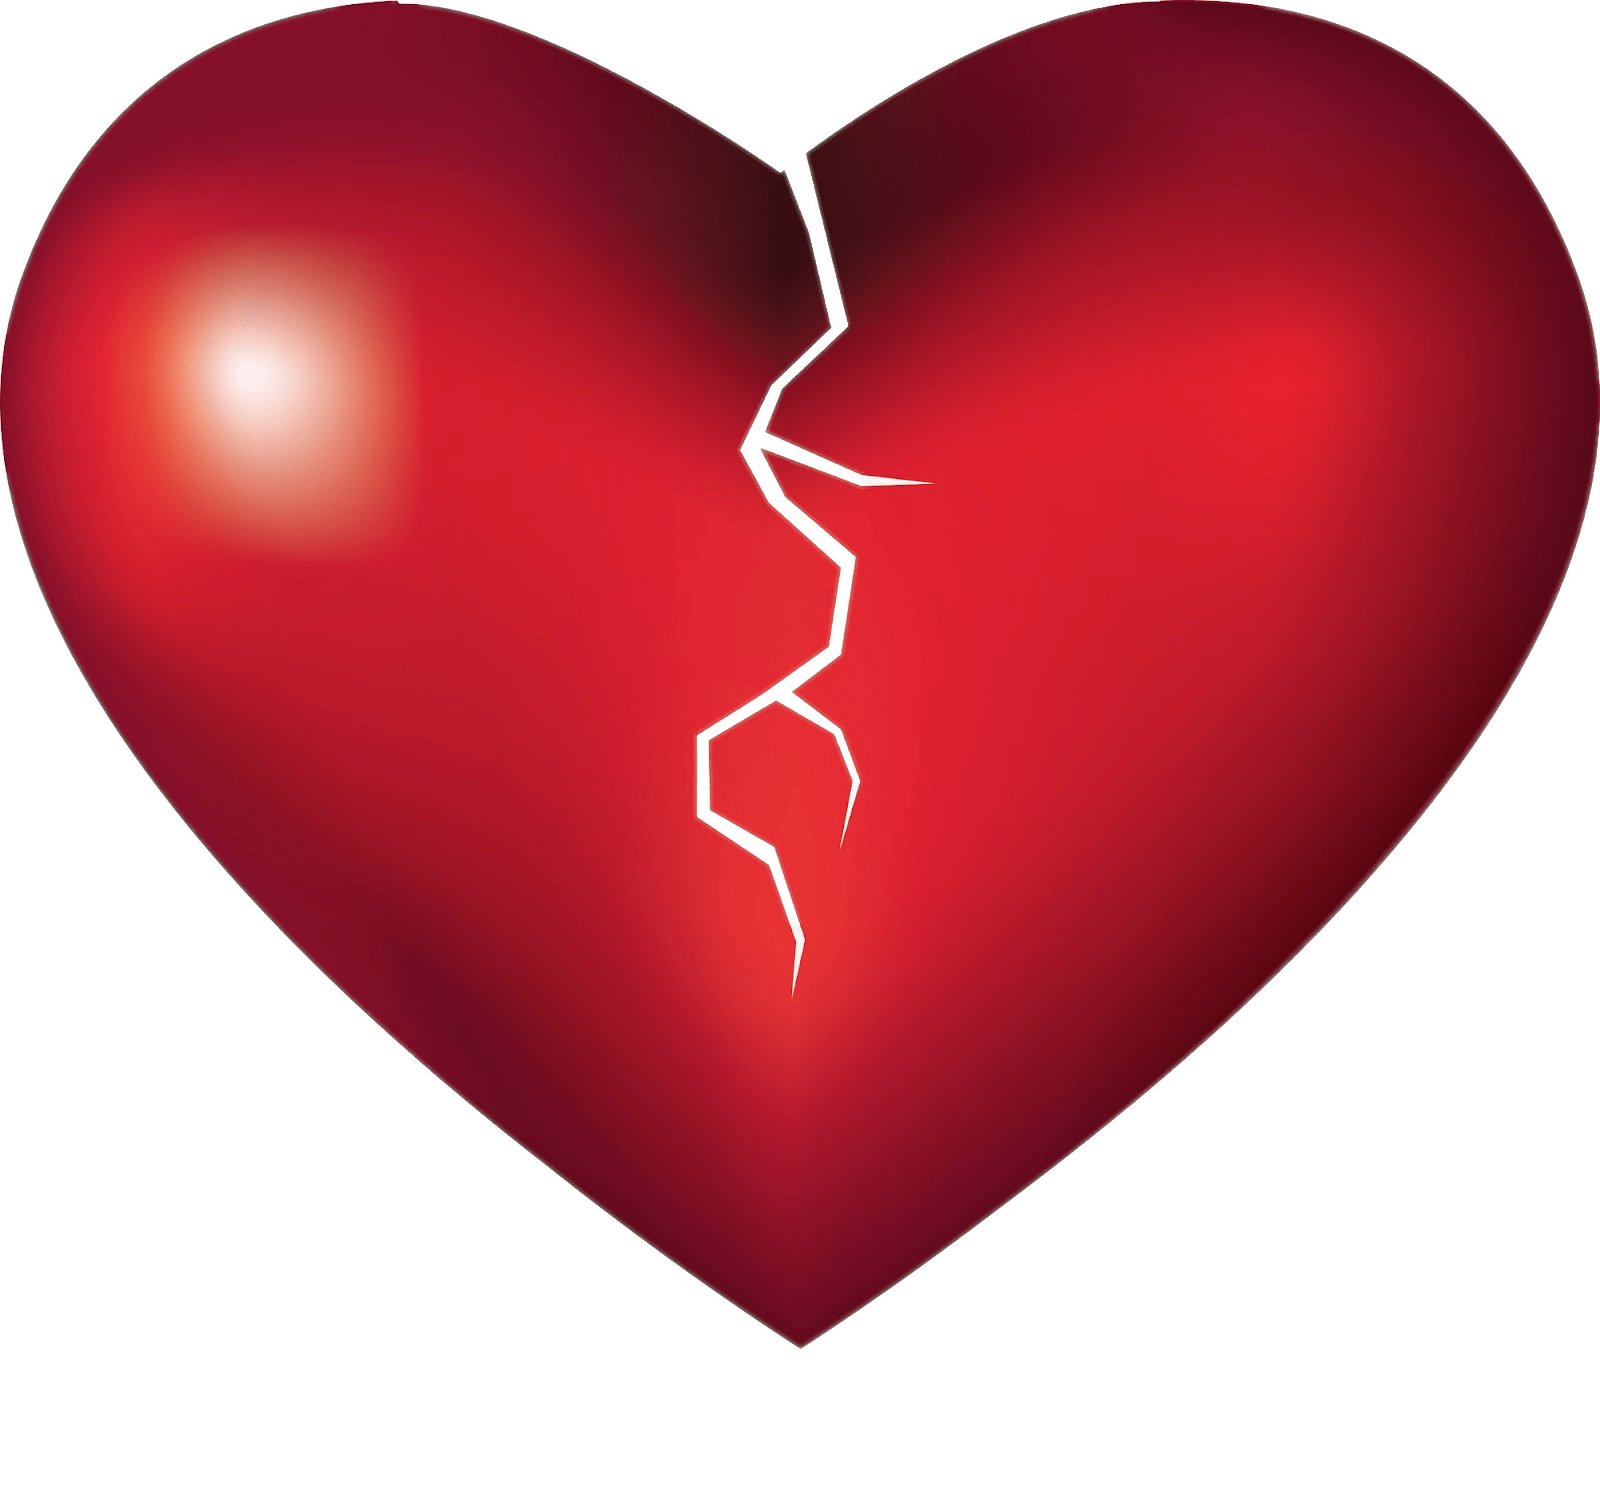 Money heart breaking clipart clip black and white download Breaking Heart transparent PNG - StickPNG clip black and white download